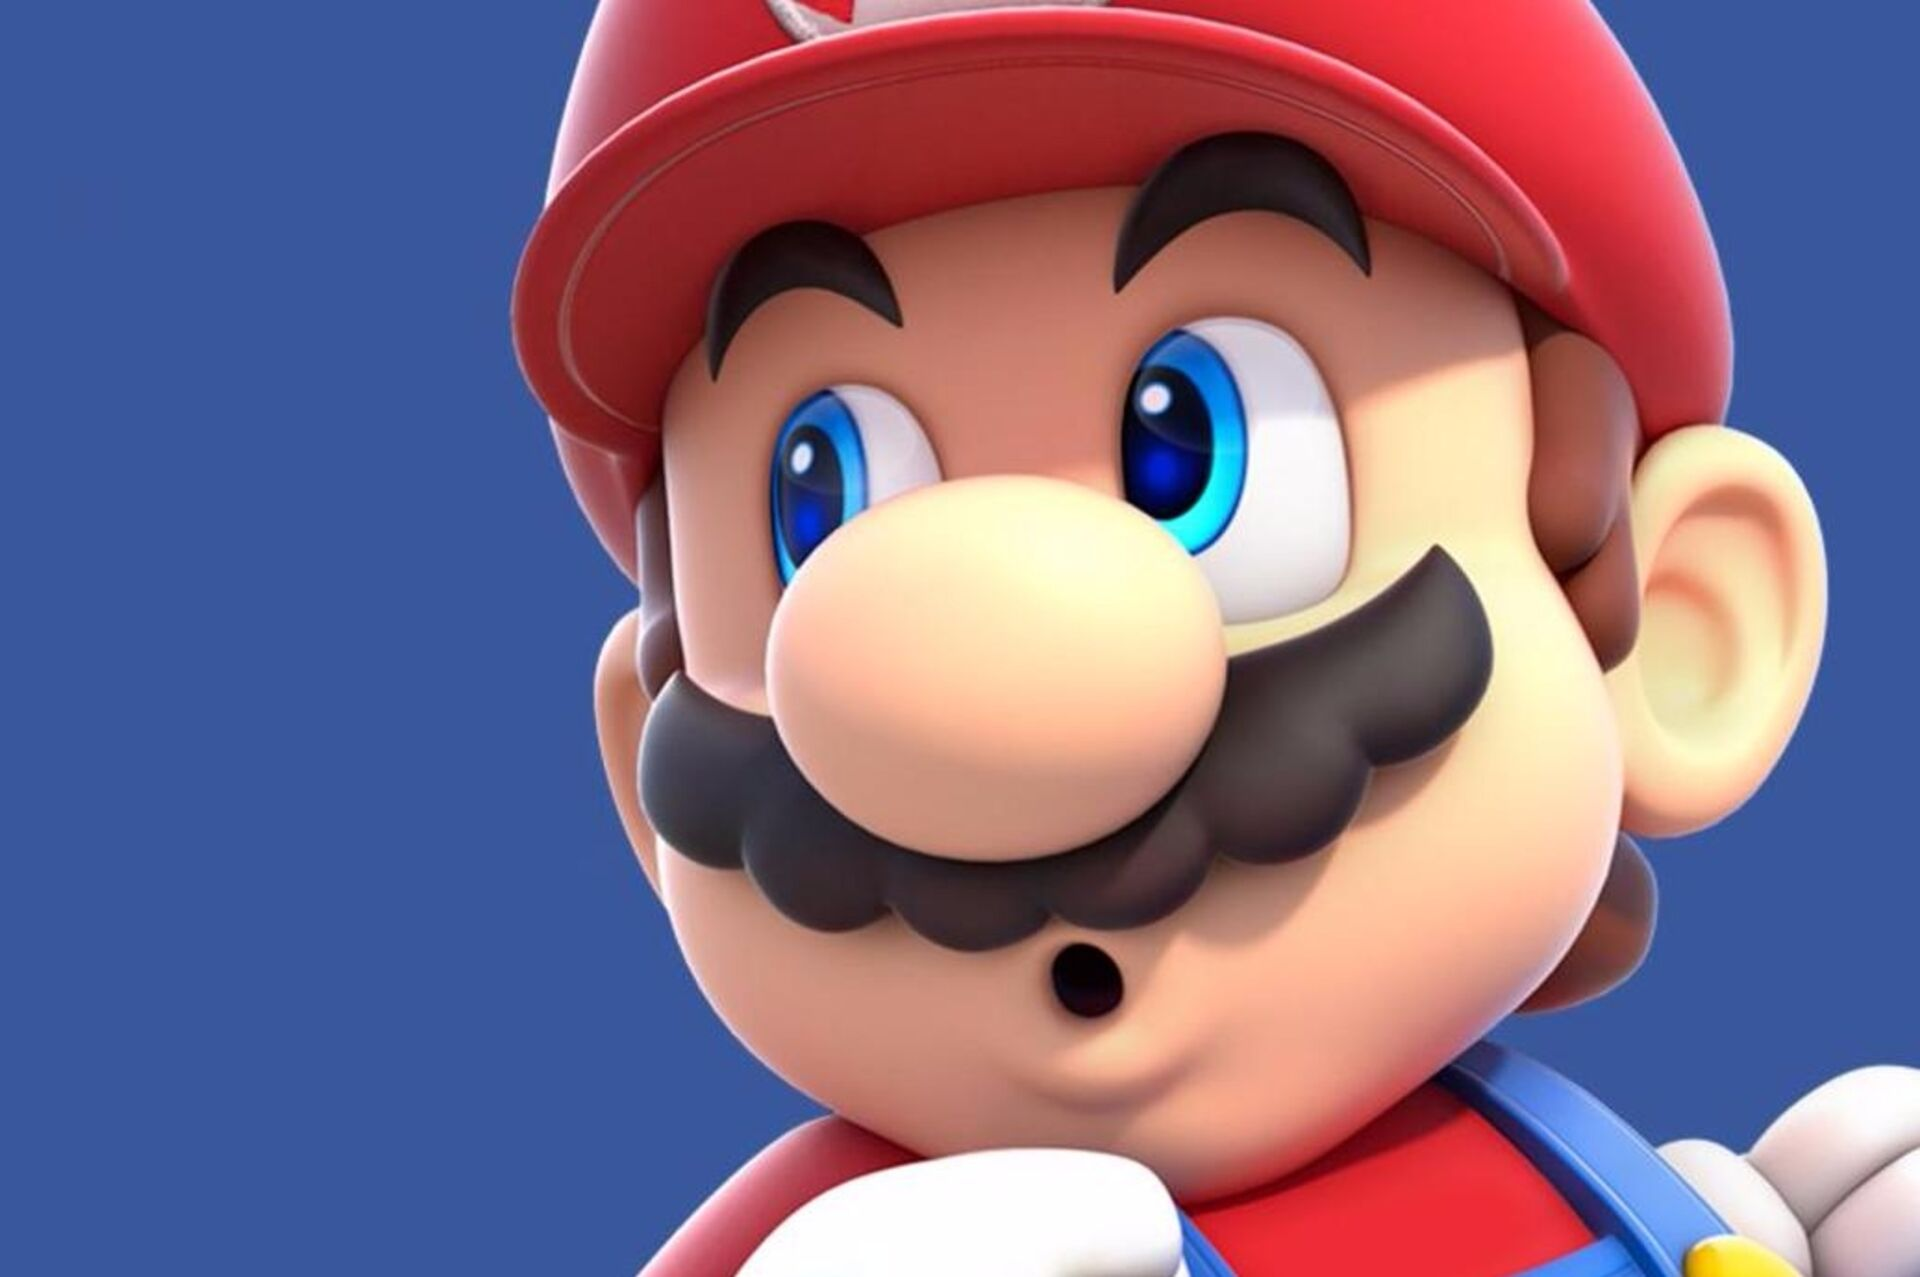 Did Nintendo download a Mario ROM and sell it back to us